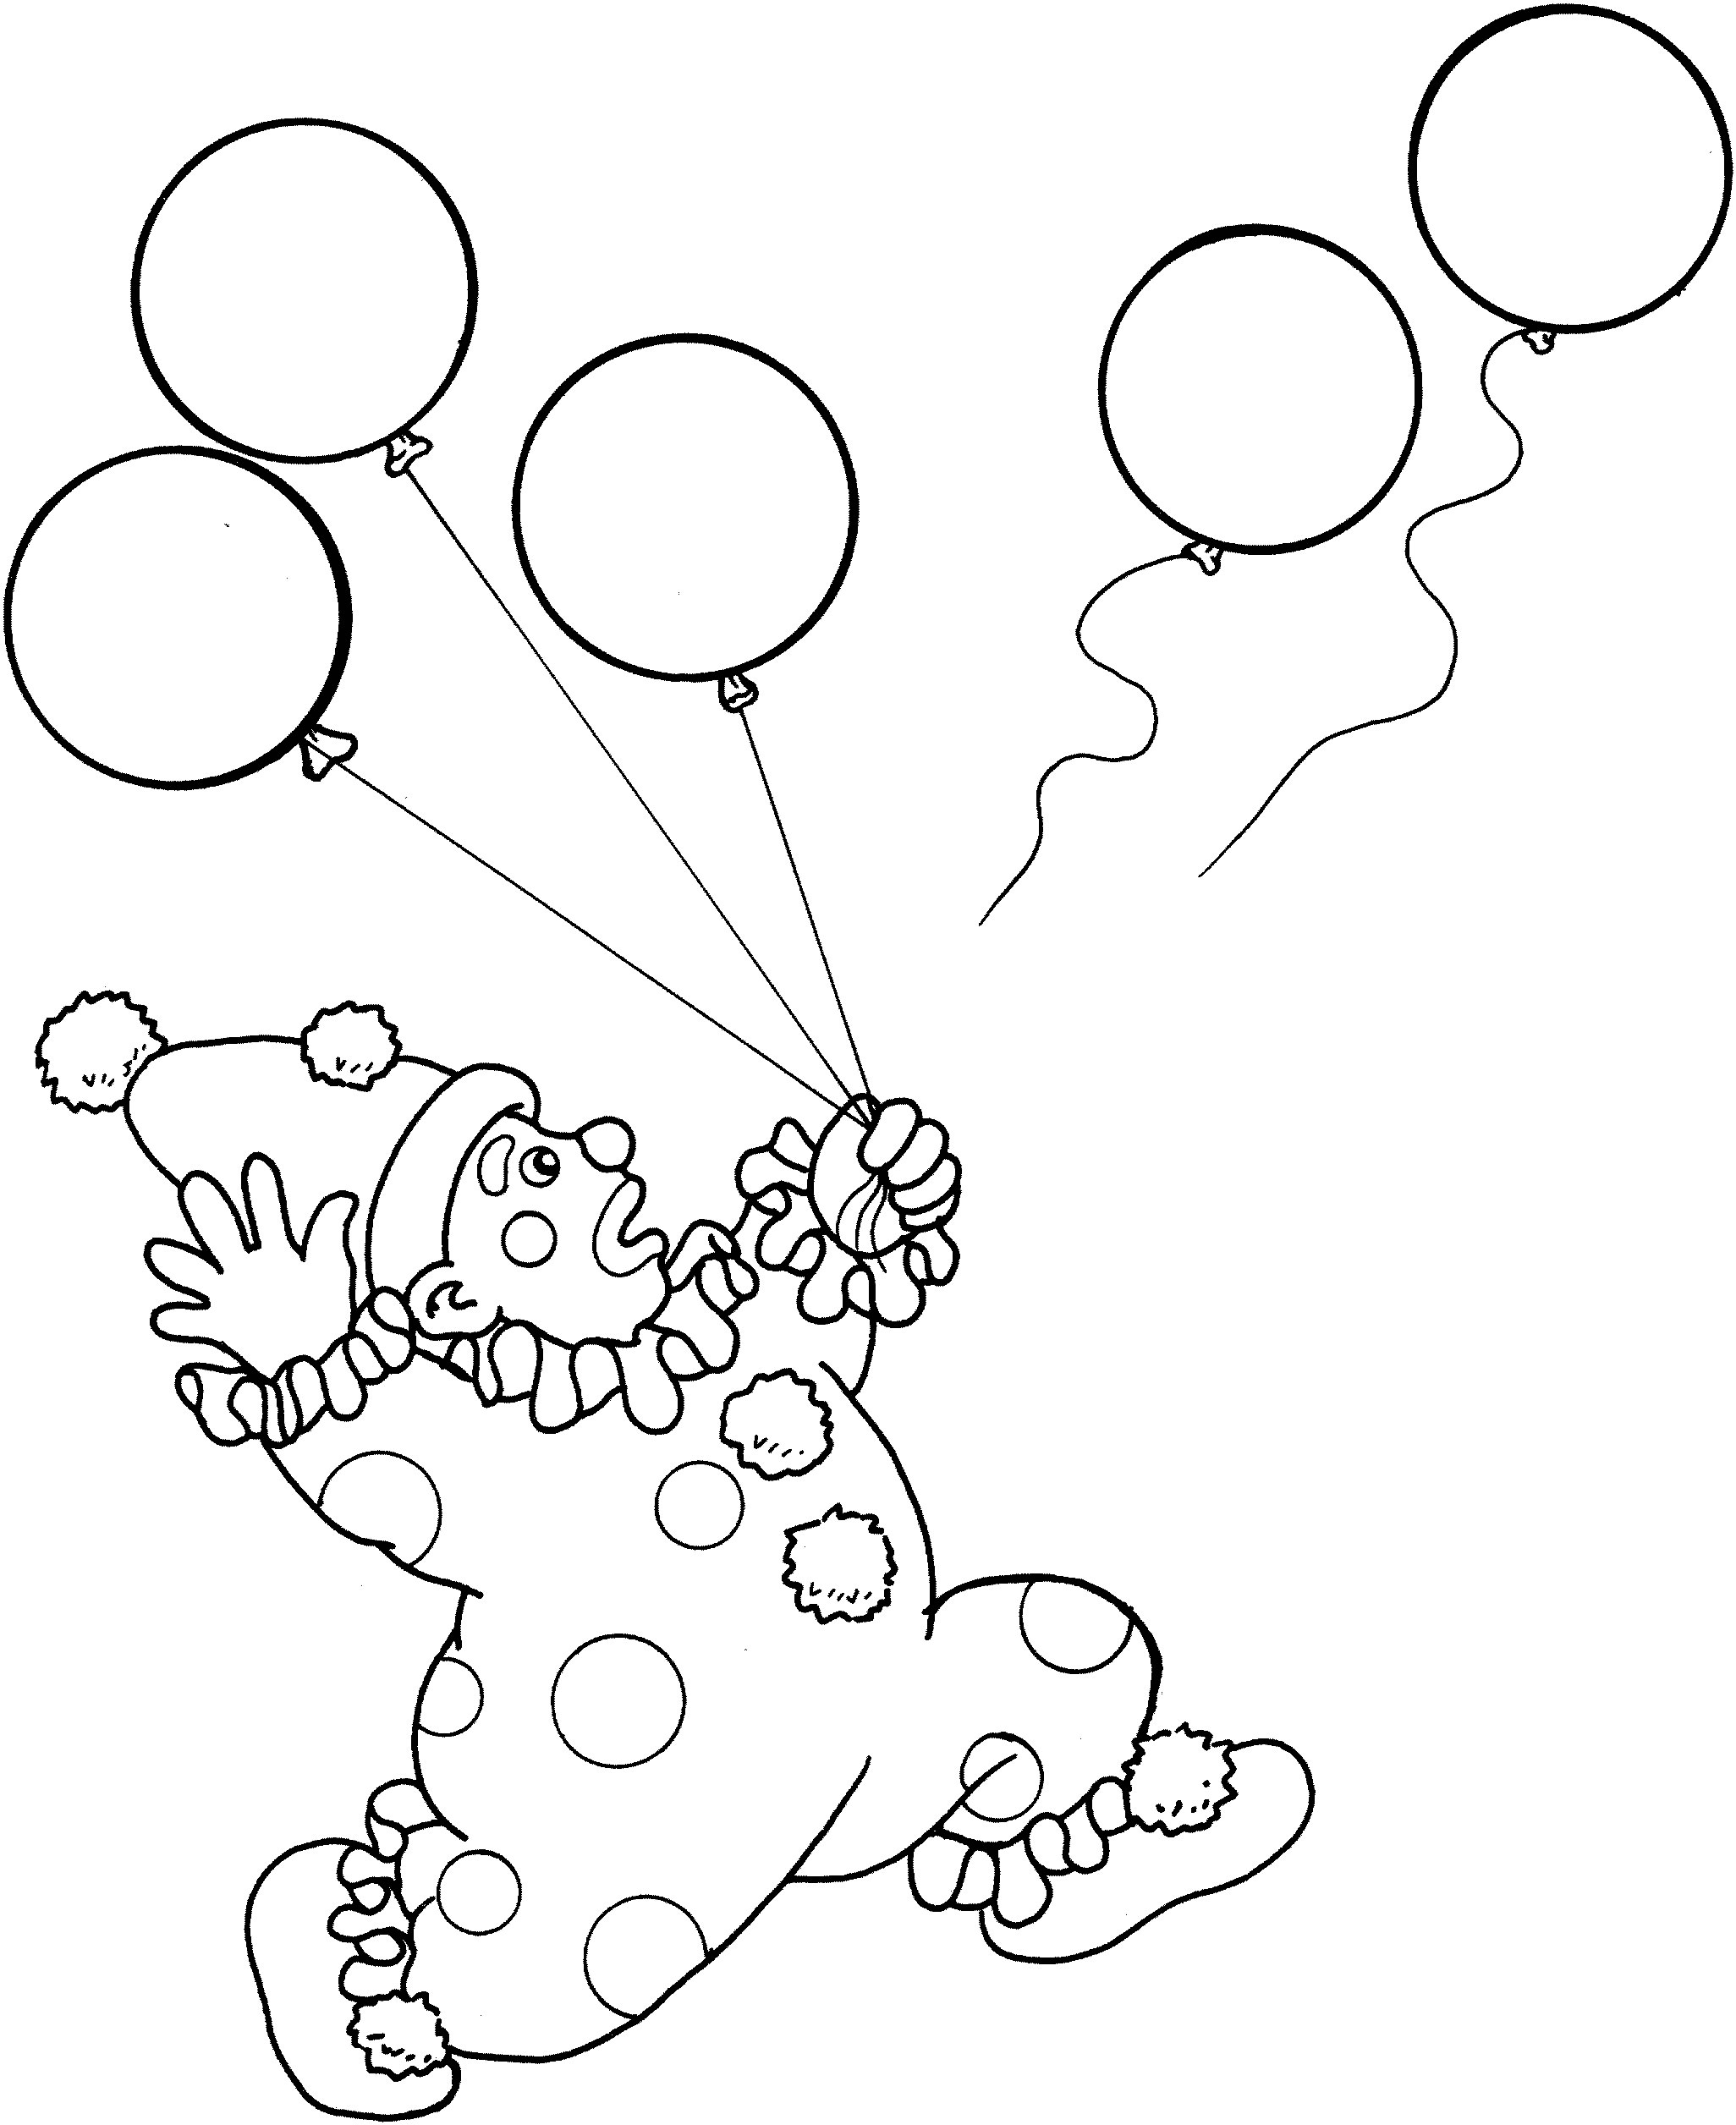 Circus free to color for children - Circus Kids Coloring Pages